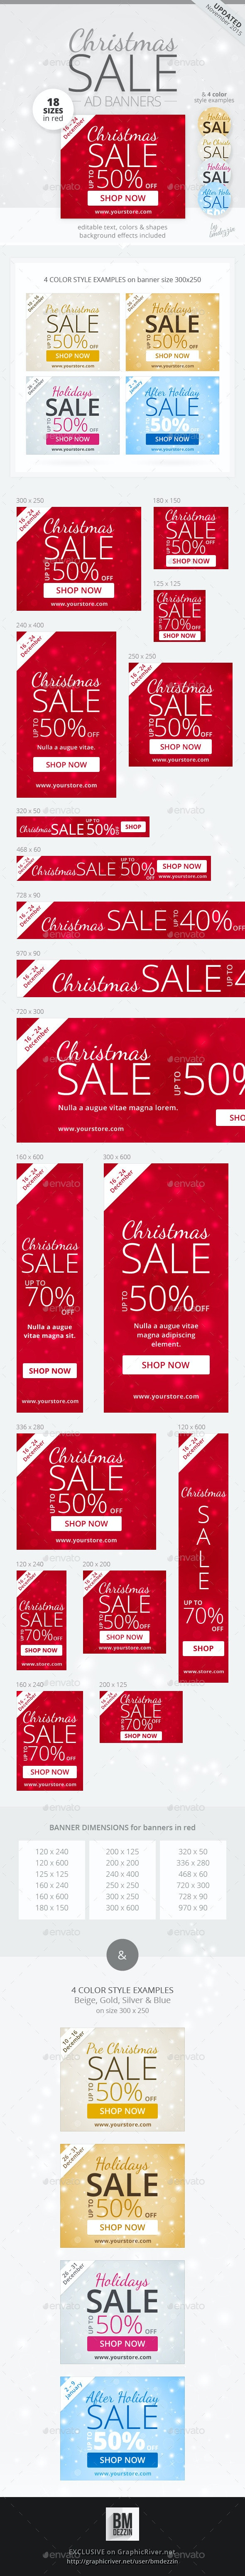 Christmas Sale Web Ad Banners - Banners & Ads Web Elements